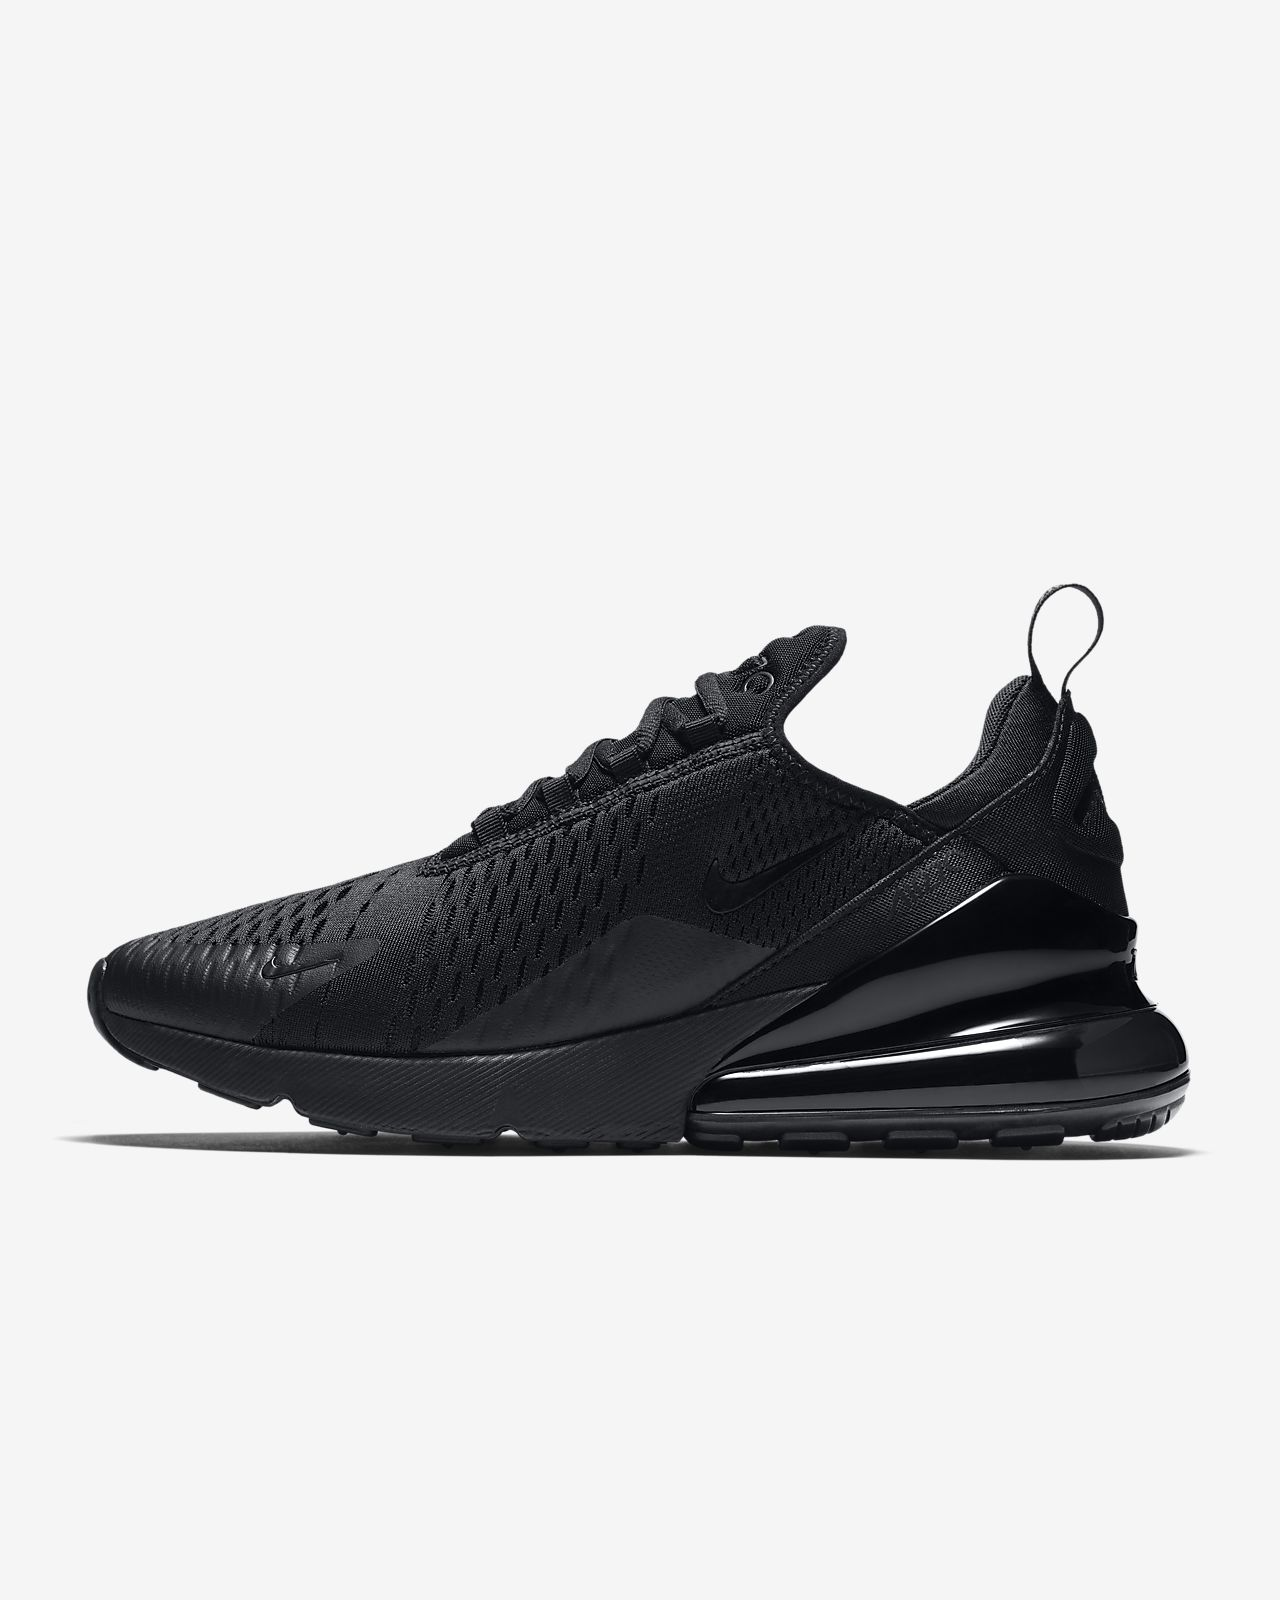 new concept e7cd9 a8b93 ... Nike Air Max 270 Herrenschuh